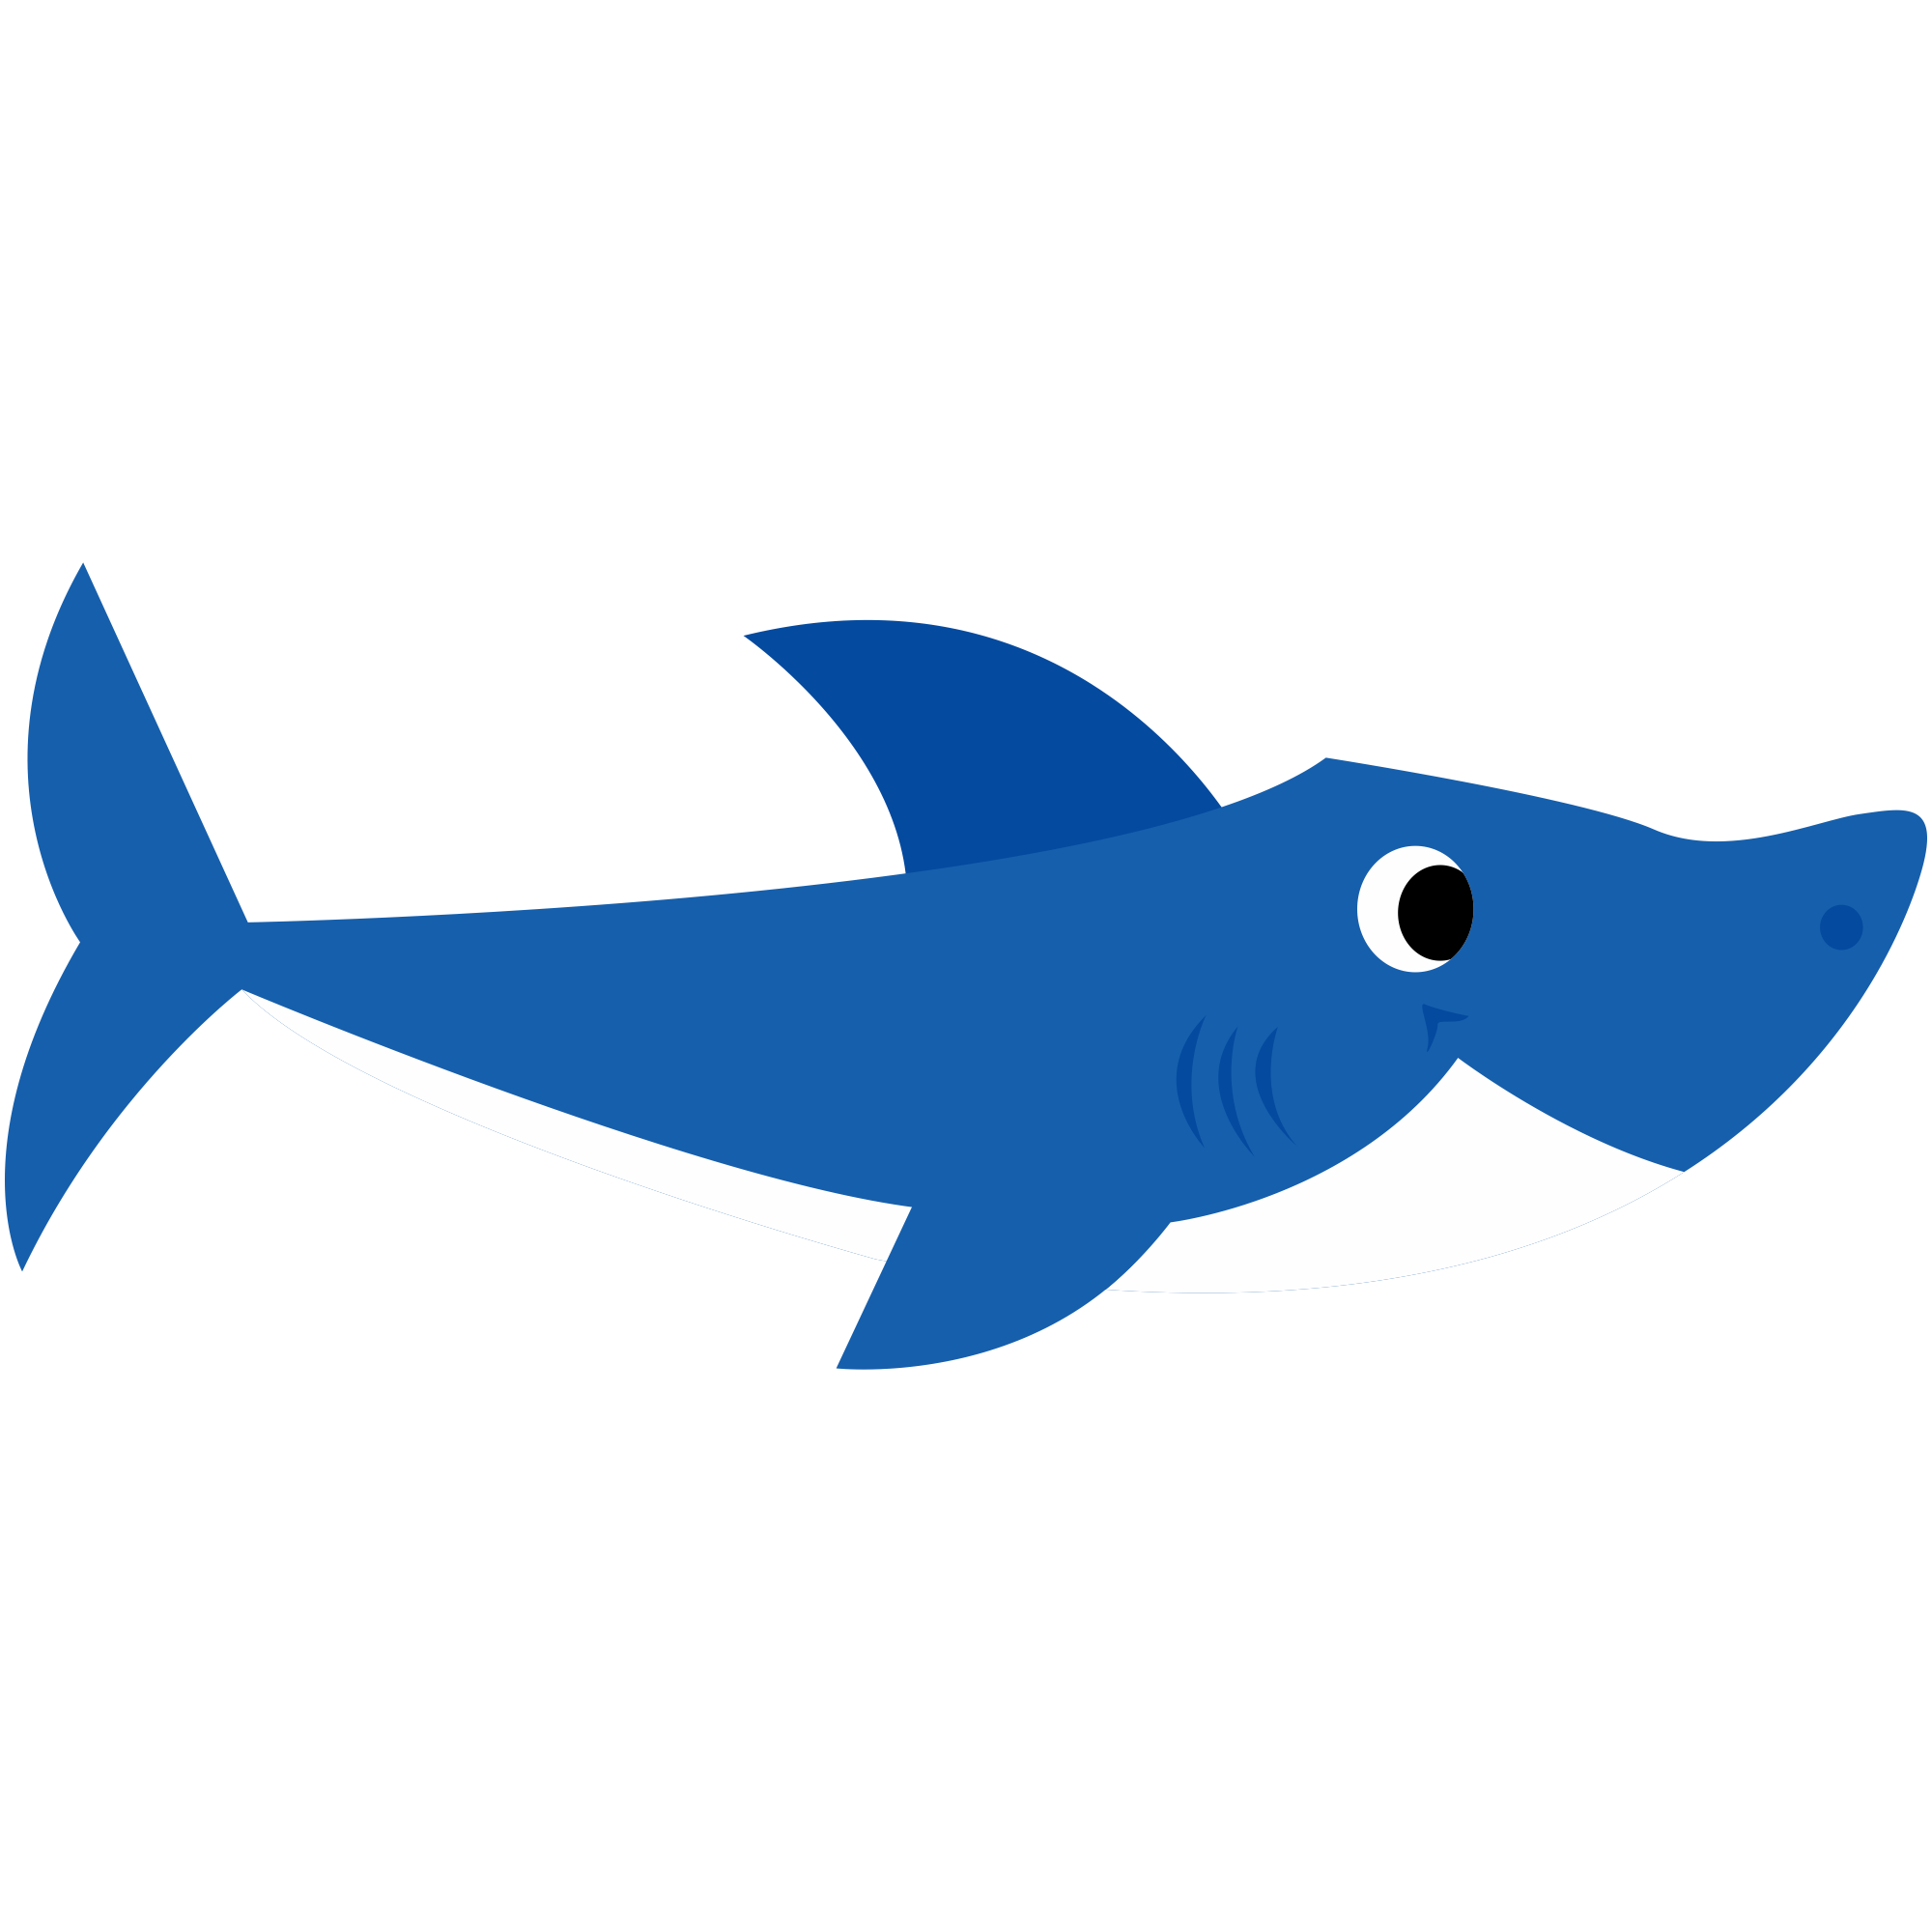 Find Hd Grandma Shark Png Baby Shark Em Png Transparent Png To Search And Download More Free Transpare Baby Shark Christmas Baby Shark Shark Theme Birthday